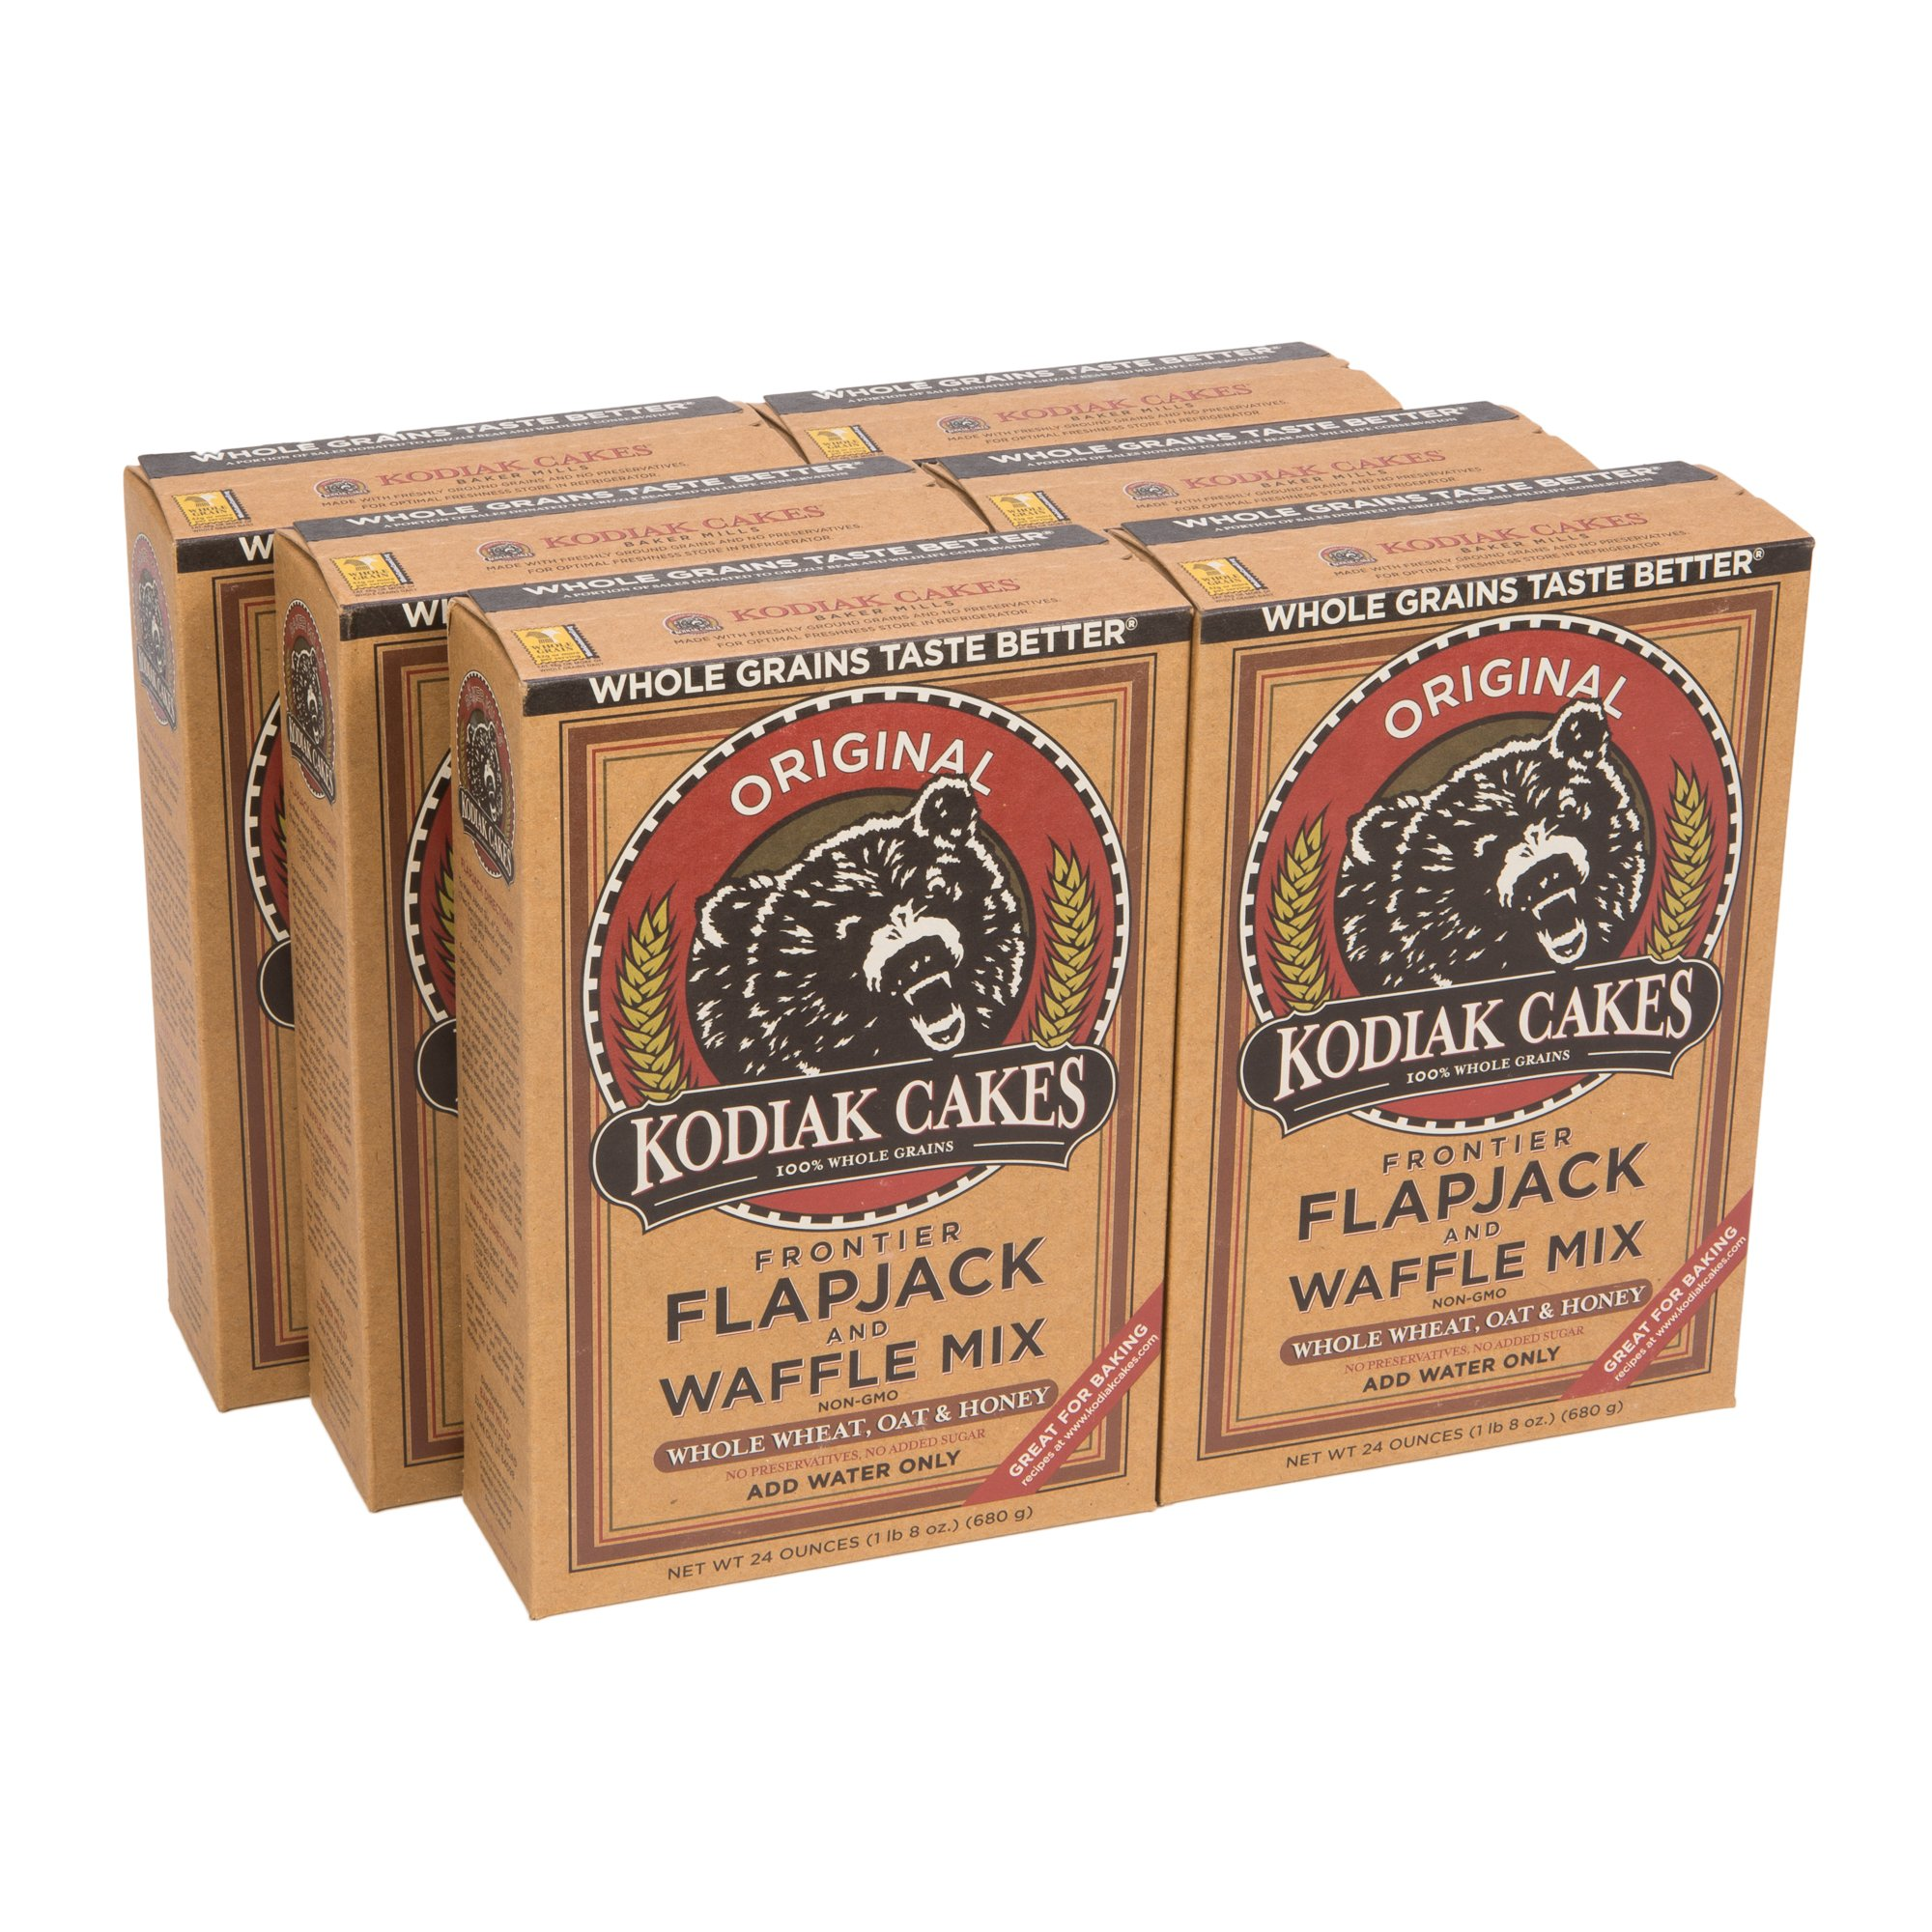 Kodiak Cakes All Natural Frontier Pancake, Flapjack and Waffle Mix, Original, 24 Ounce (Pack of 6)